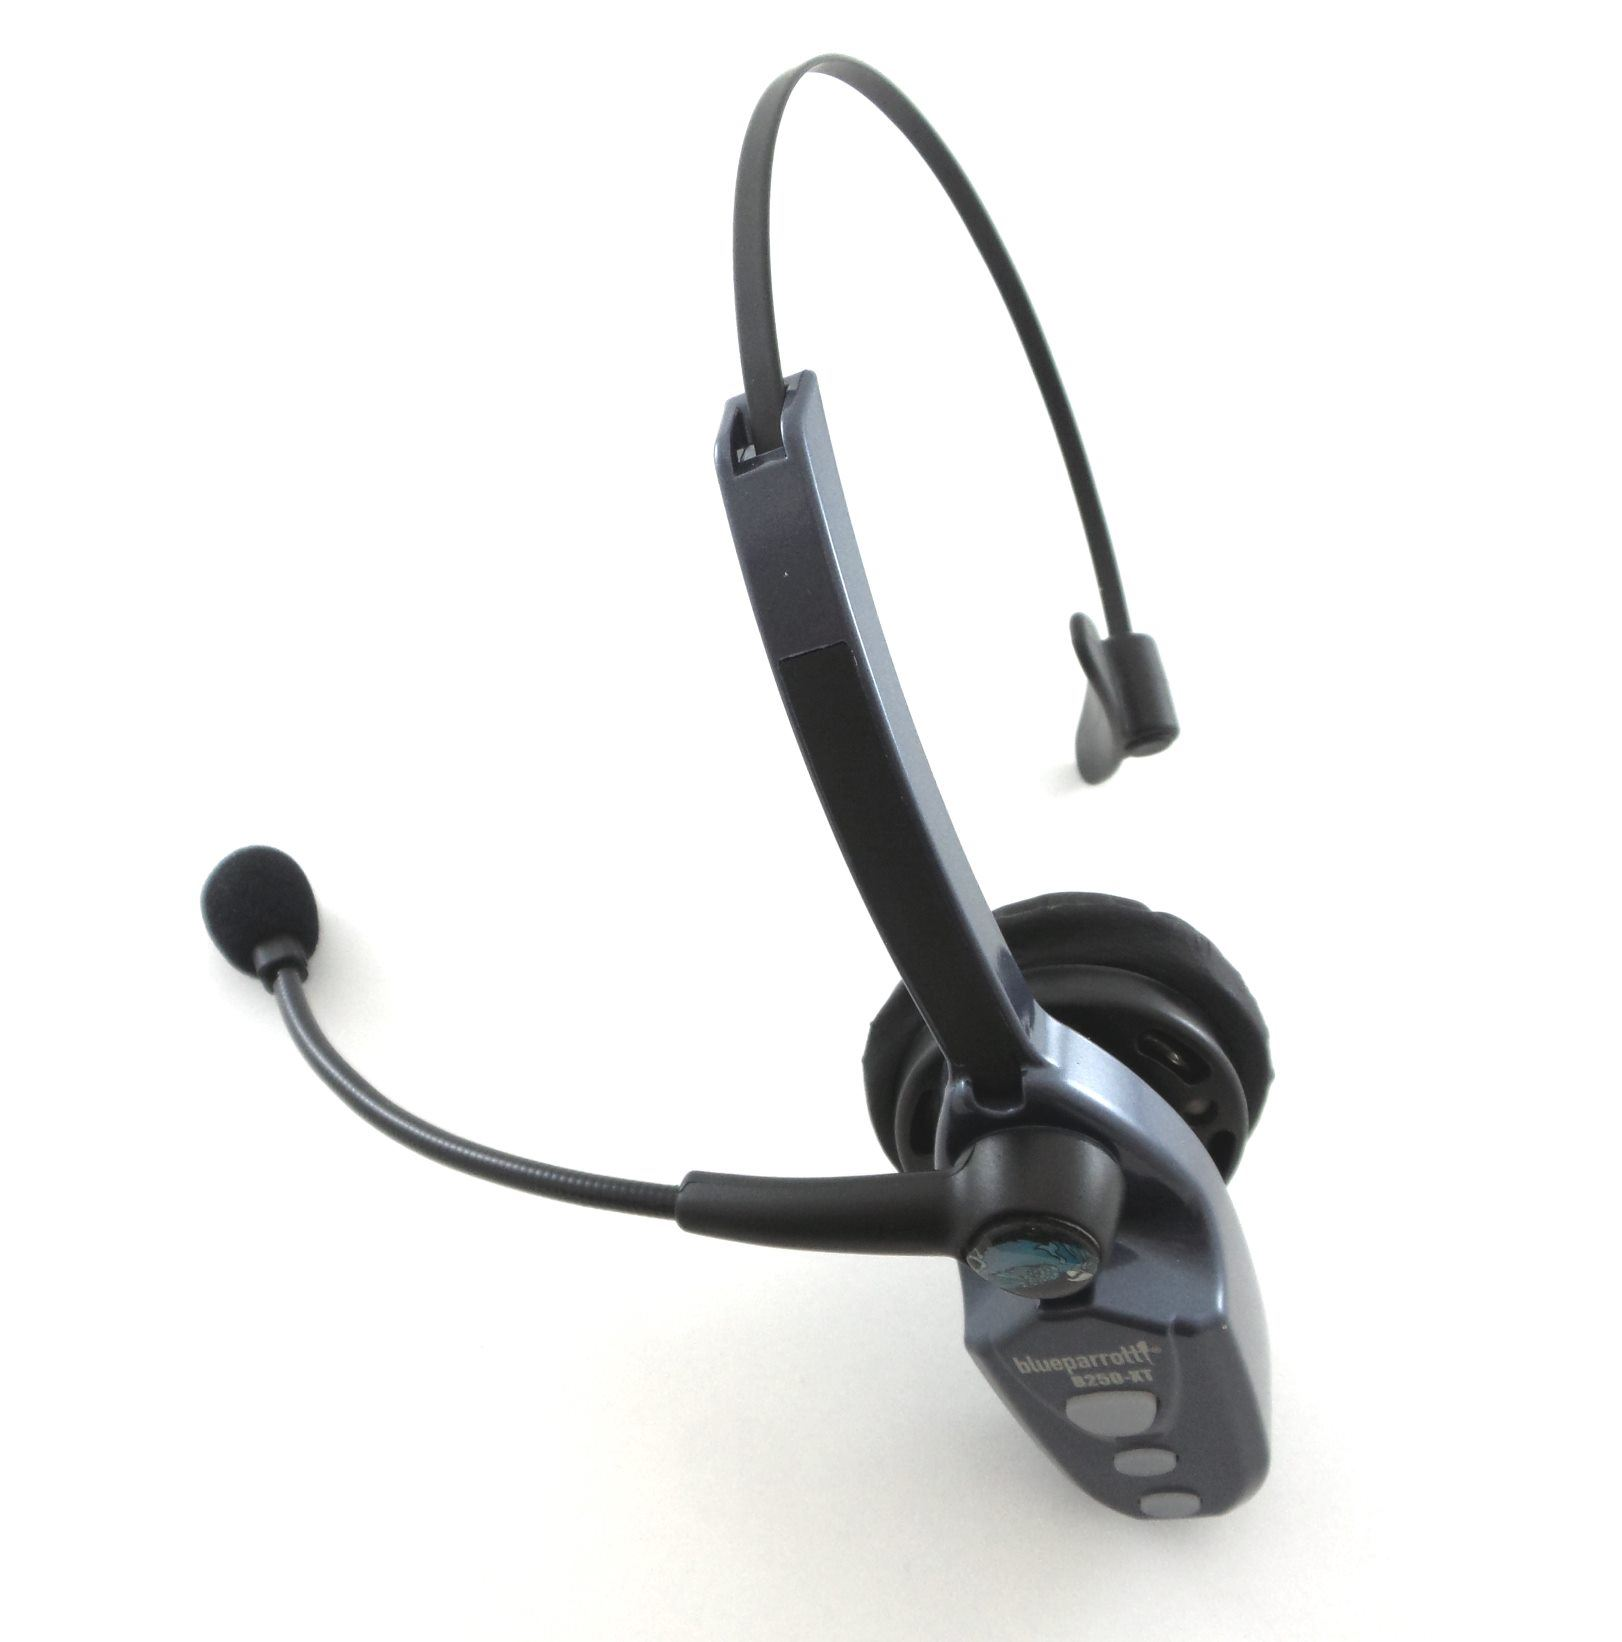 vxi blueparrott b250 xt noise canceling bluetooth pro headset rh ebay com Blue Parrot B250-XT Troubleshooting BlueParrott B250-XT Accessories